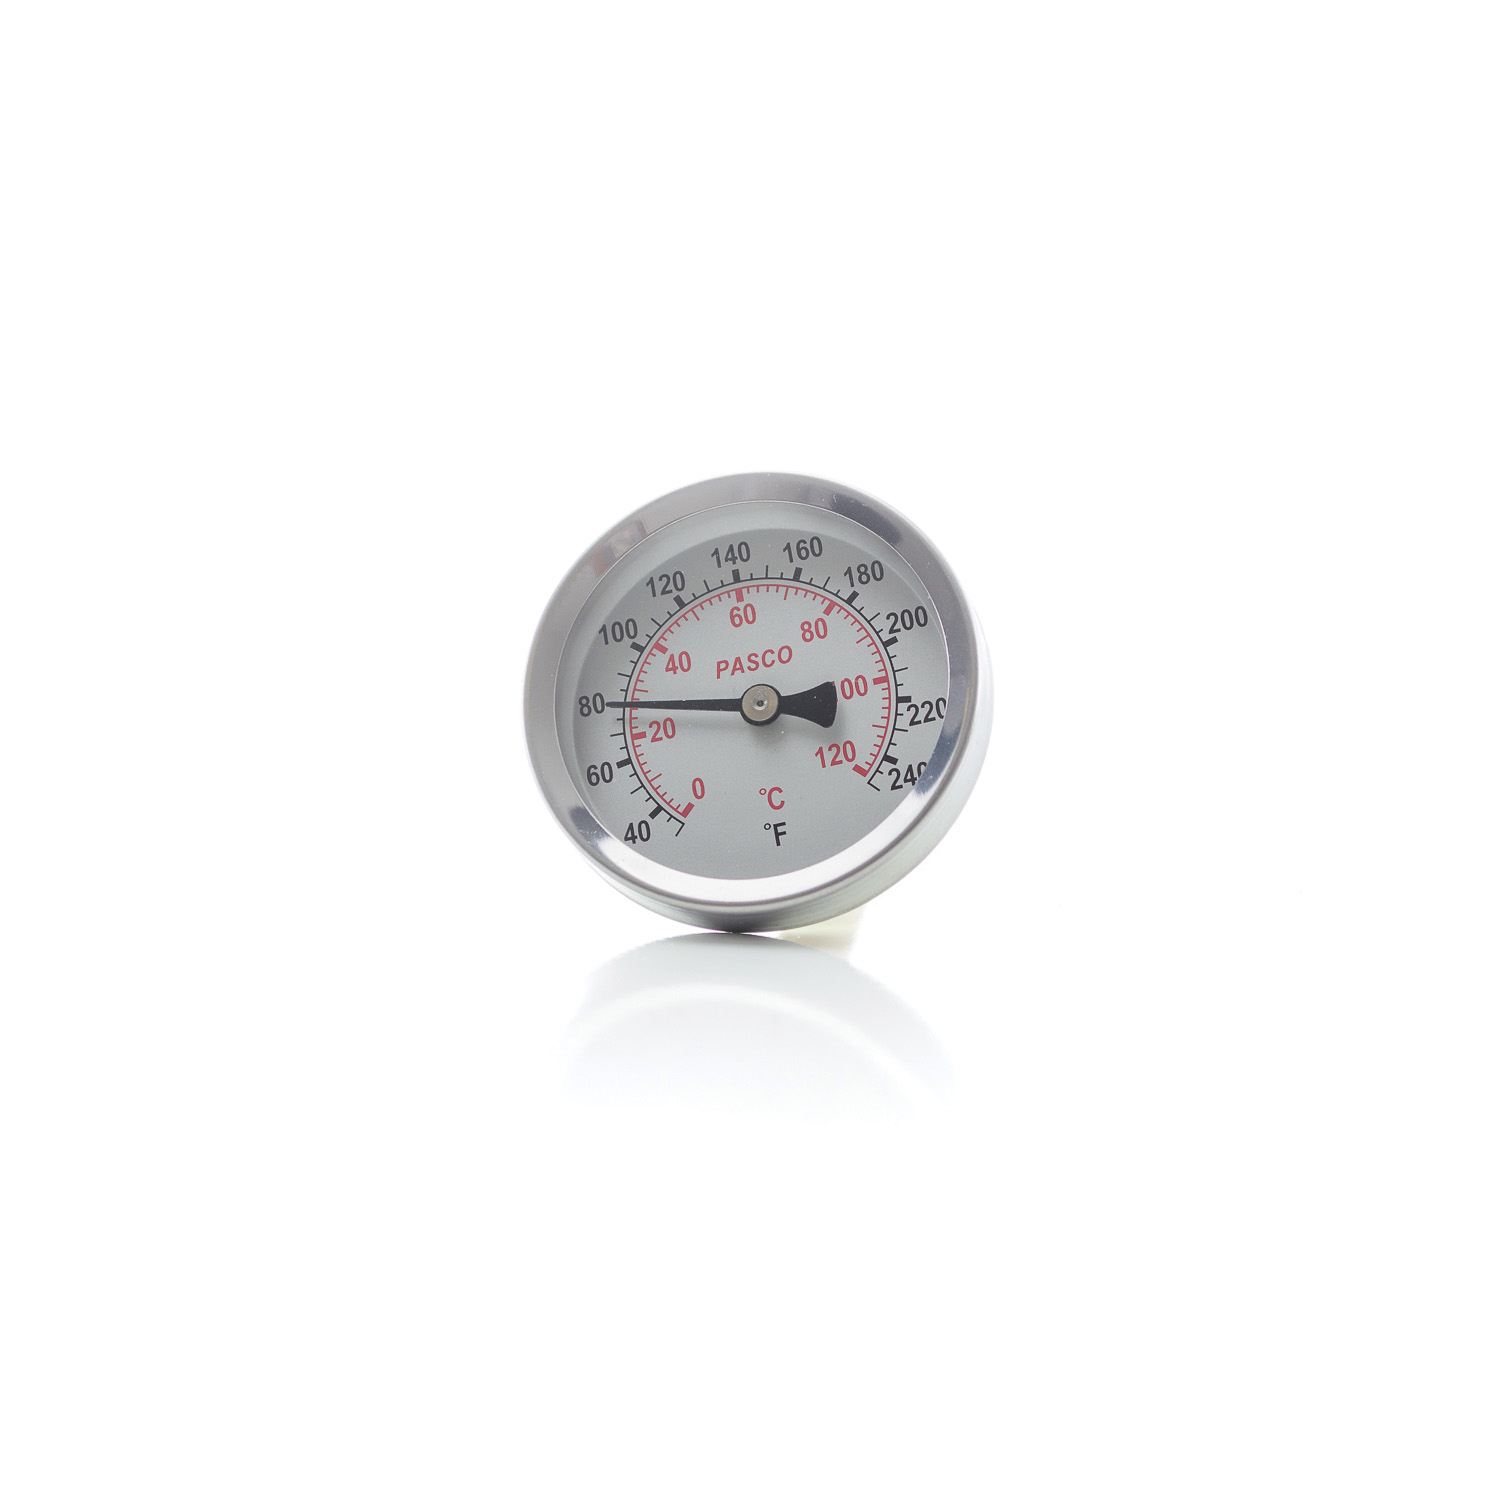 """PASCO 1449 2-1/2"""" MALE BRS DIAL THERMOMETER 40-250F DEGREES BACK MOUNT 1/2"""" MIP (J40703)"""